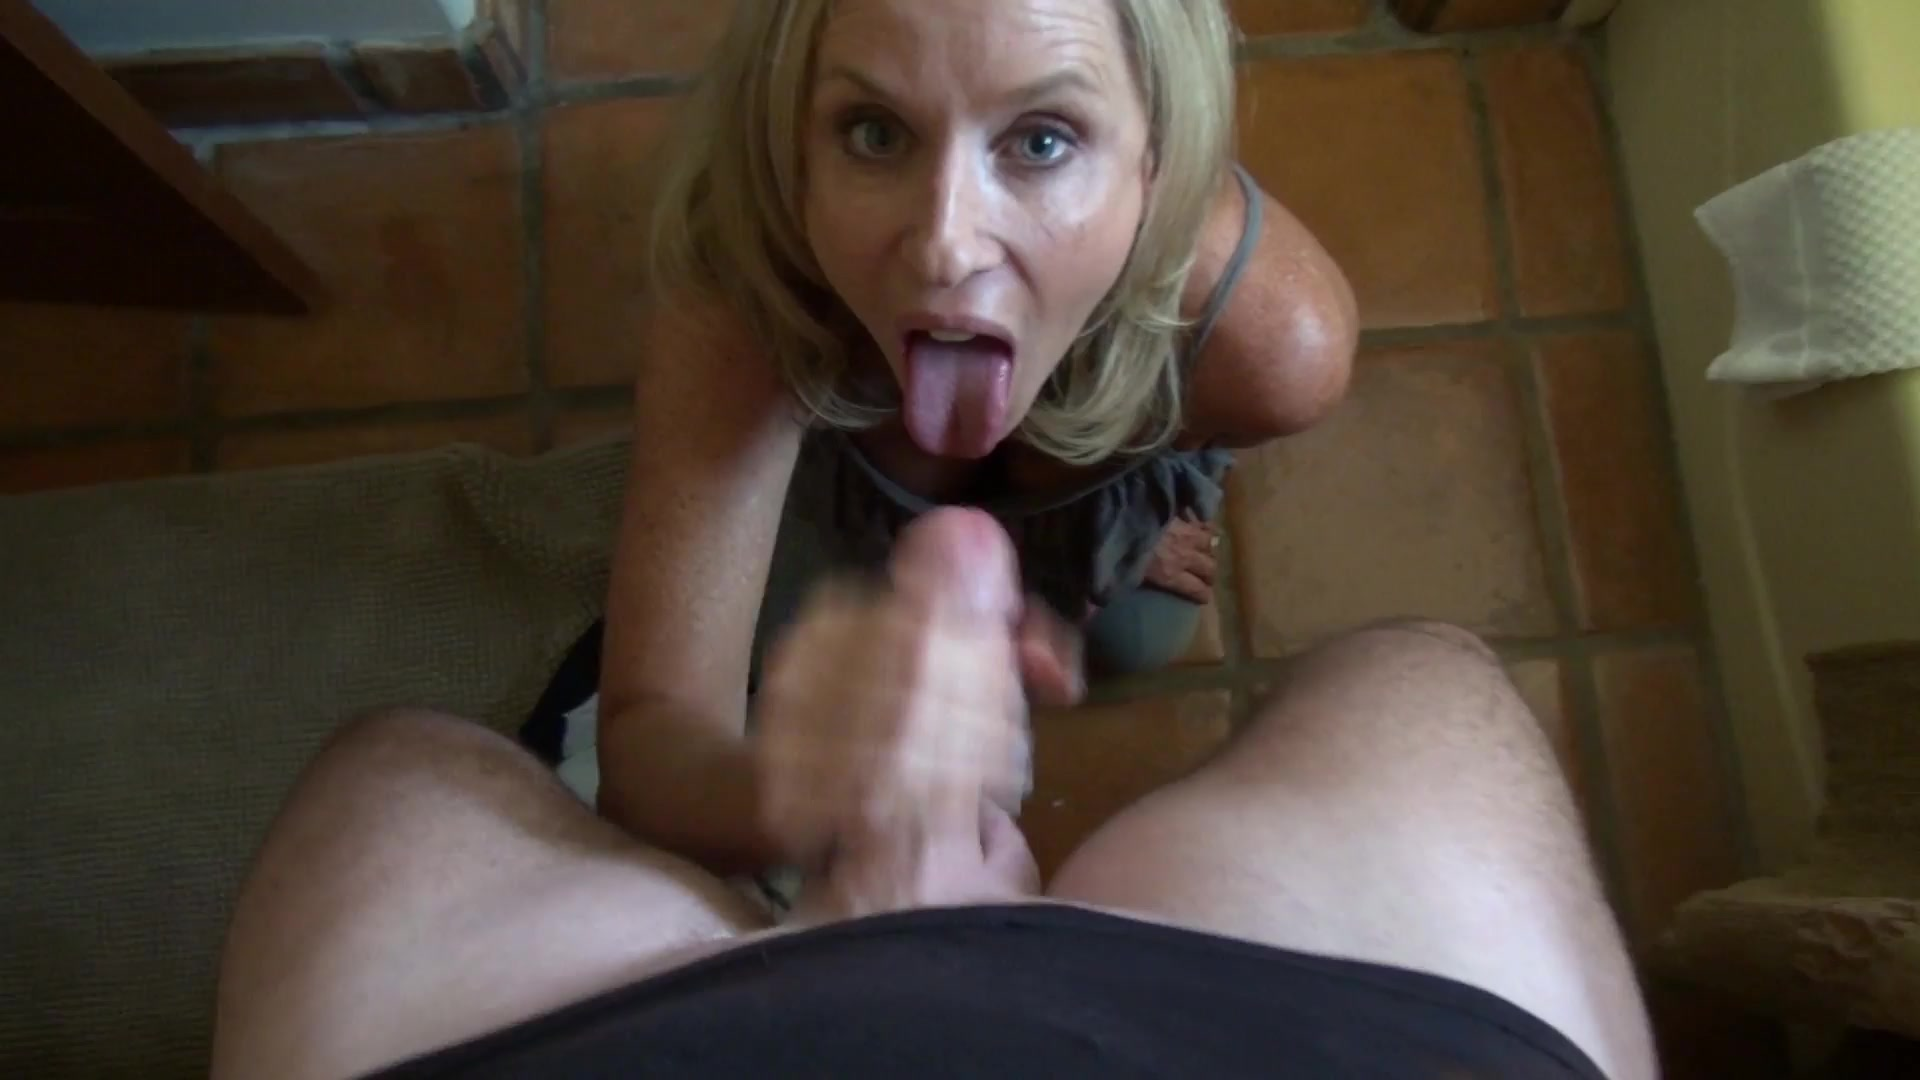 Cherie deville helps step daughter with vibrator 1